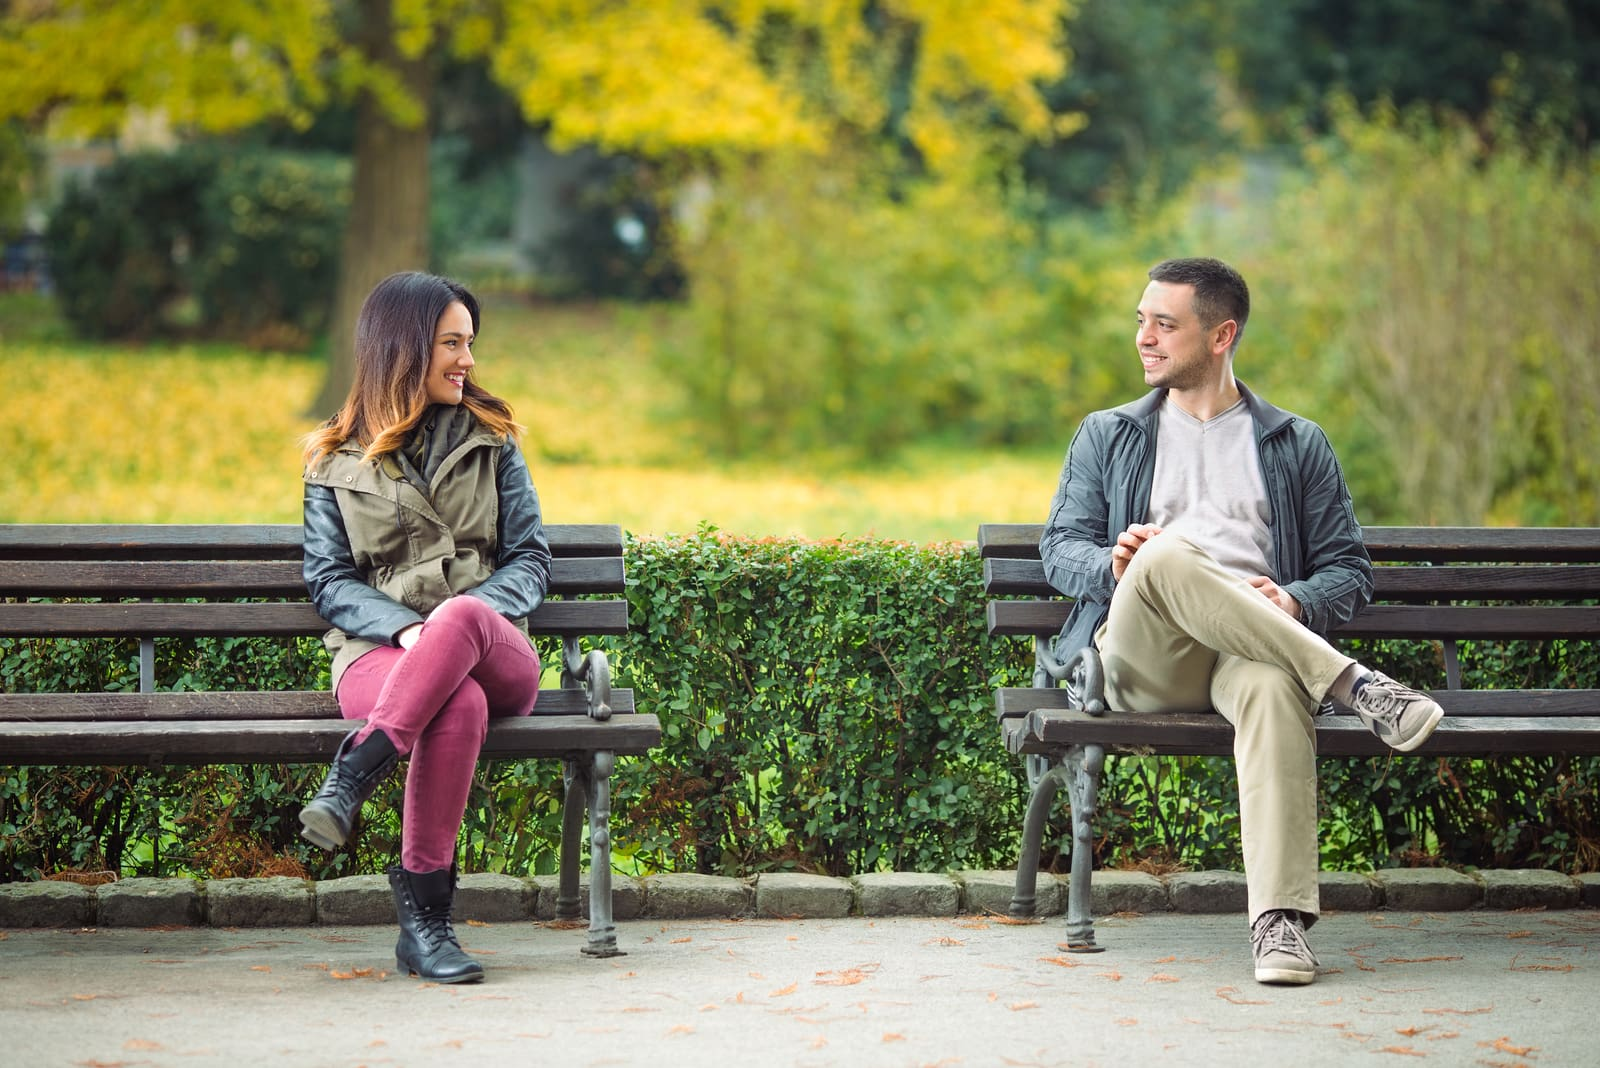 smiling man and woman sitting on the park bench